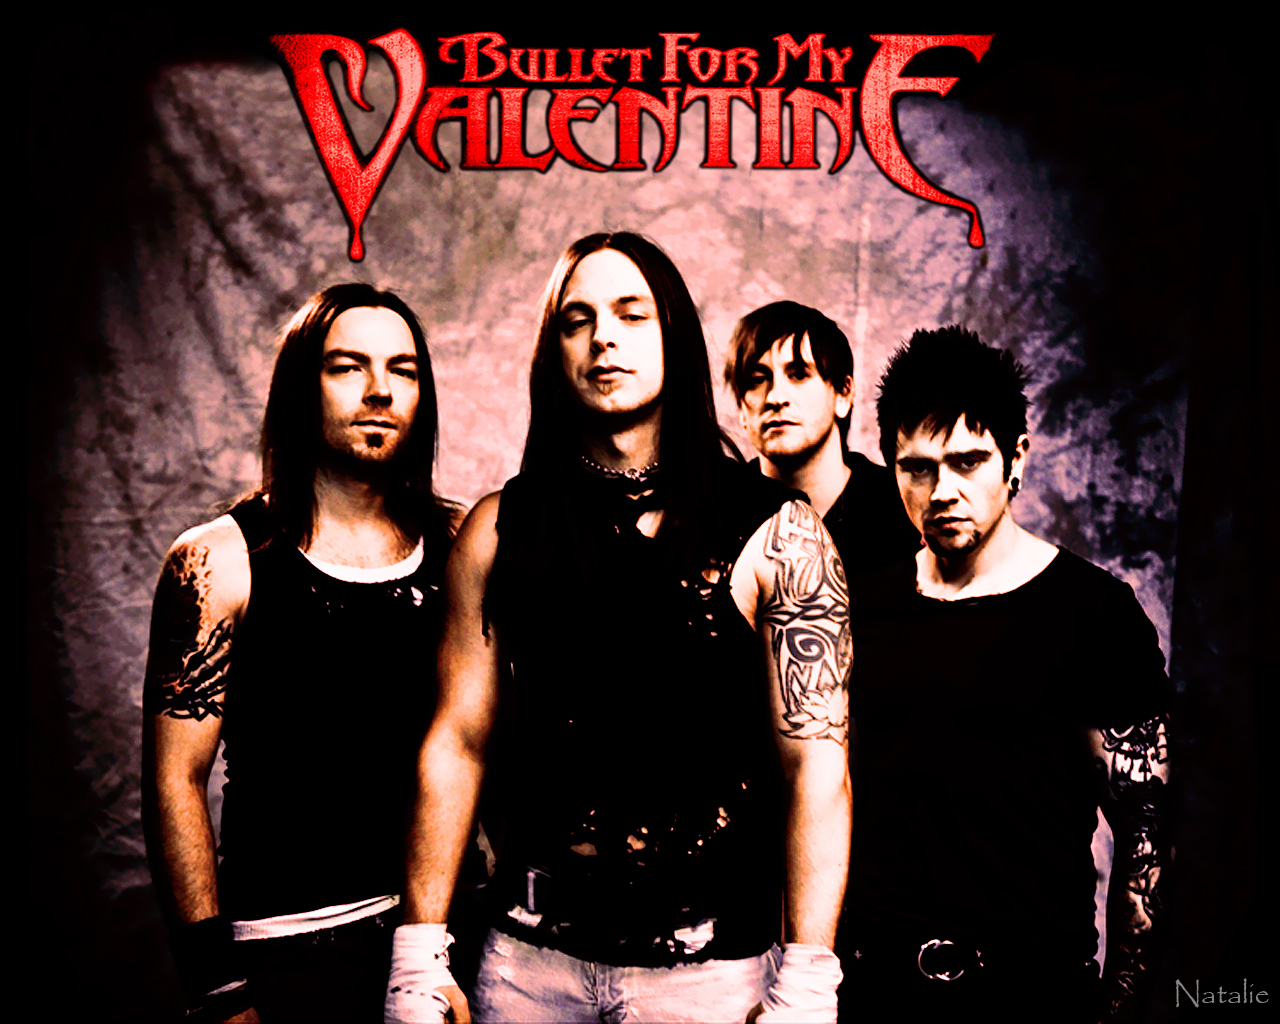 bullet for my valentine waking the demon album